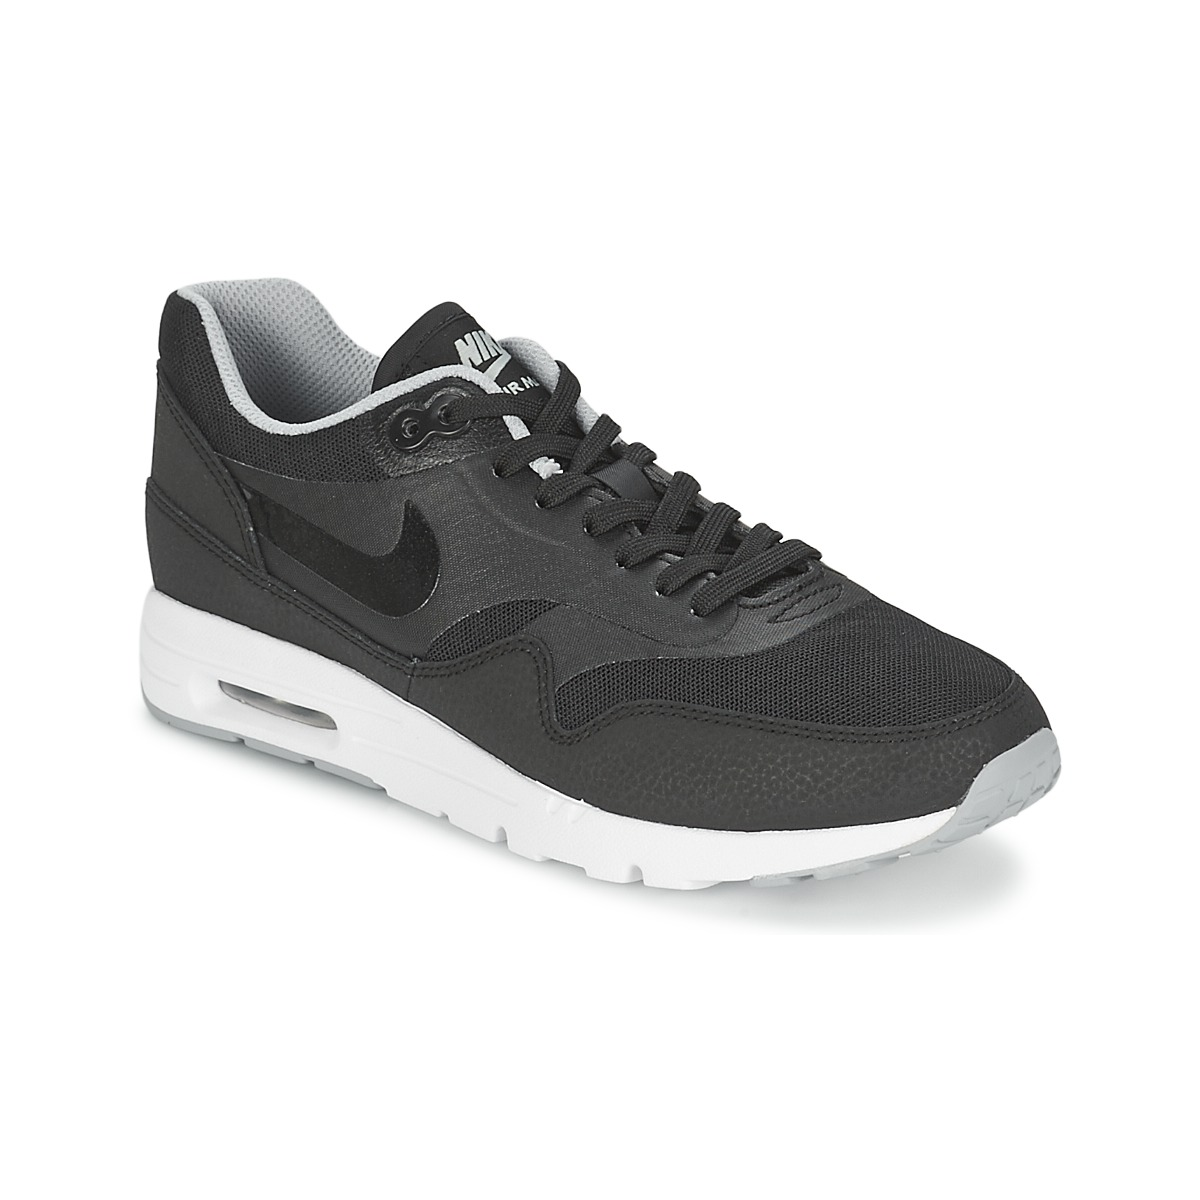 baskets basses nike air max 1 ultra essentials noir baskets femme spartoo ventes pas. Black Bedroom Furniture Sets. Home Design Ideas